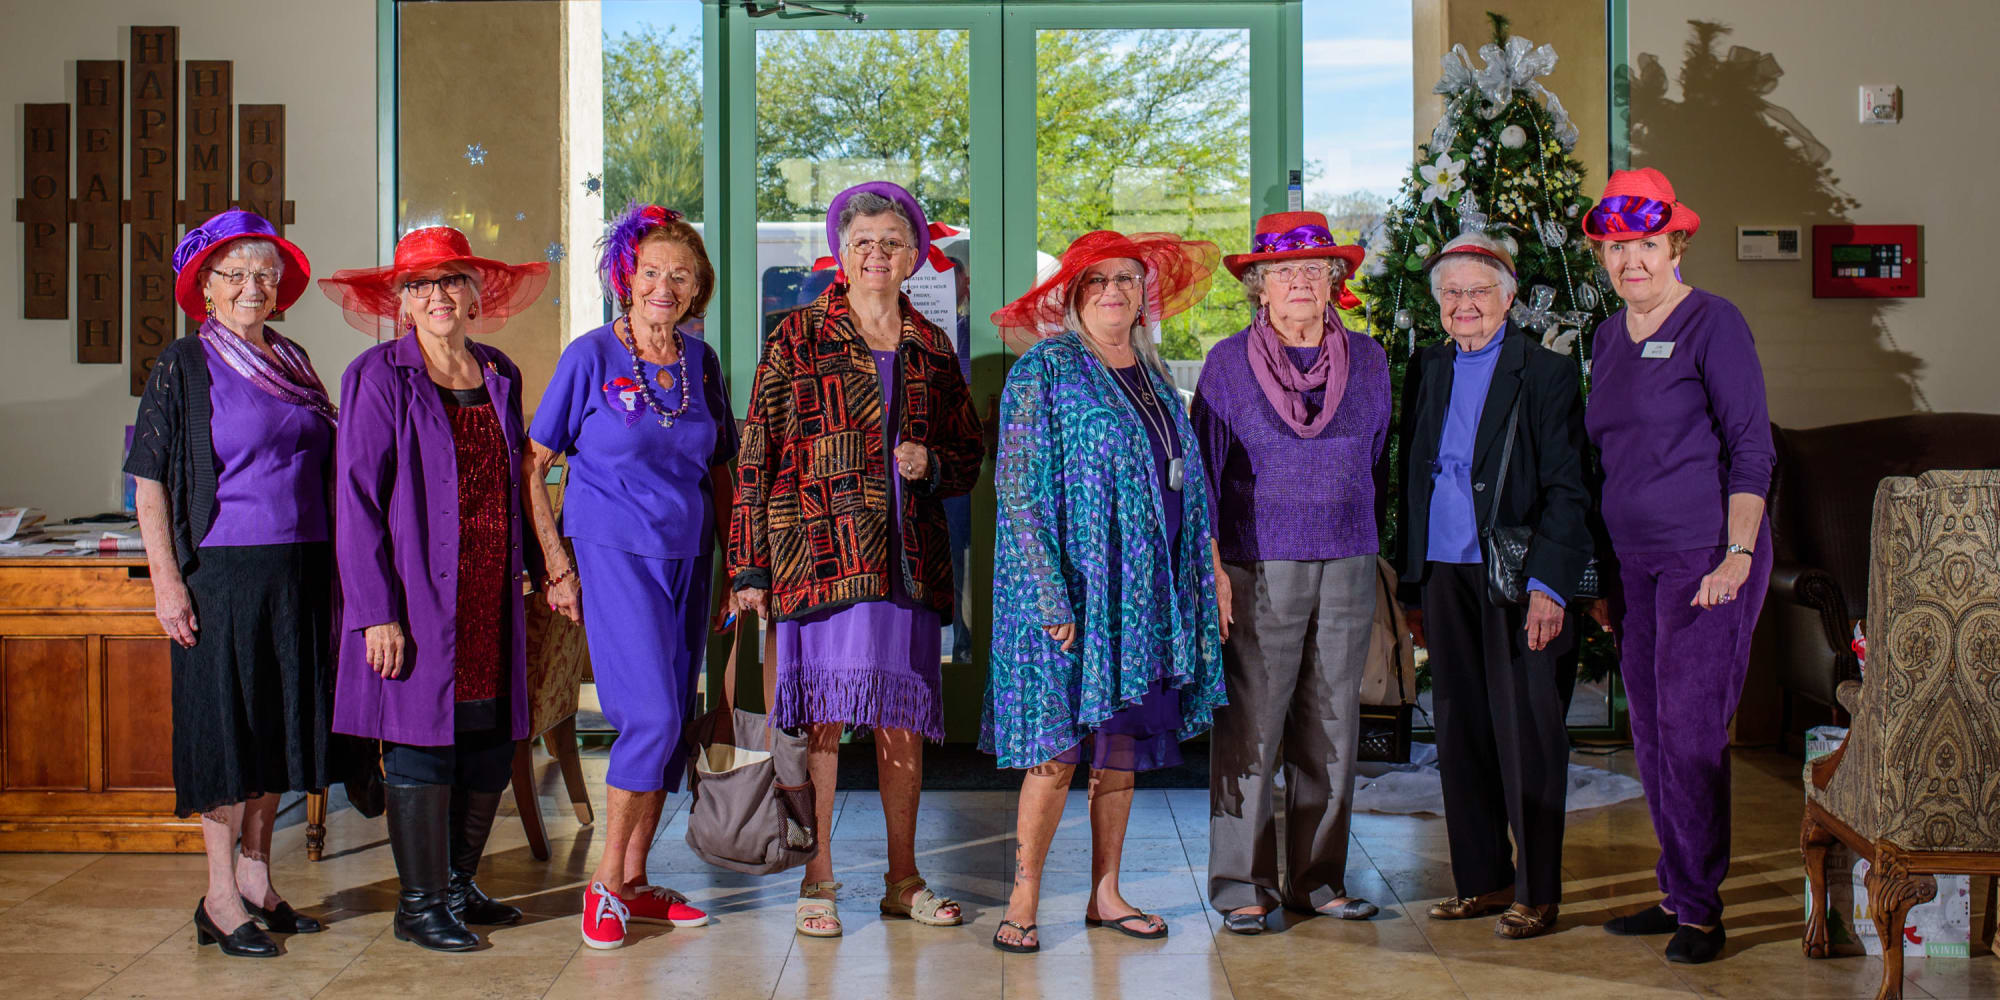 A  group of senior women wearing red hats from The Peaks at Santa Rita in Green Valley, Arizona in front of a plane